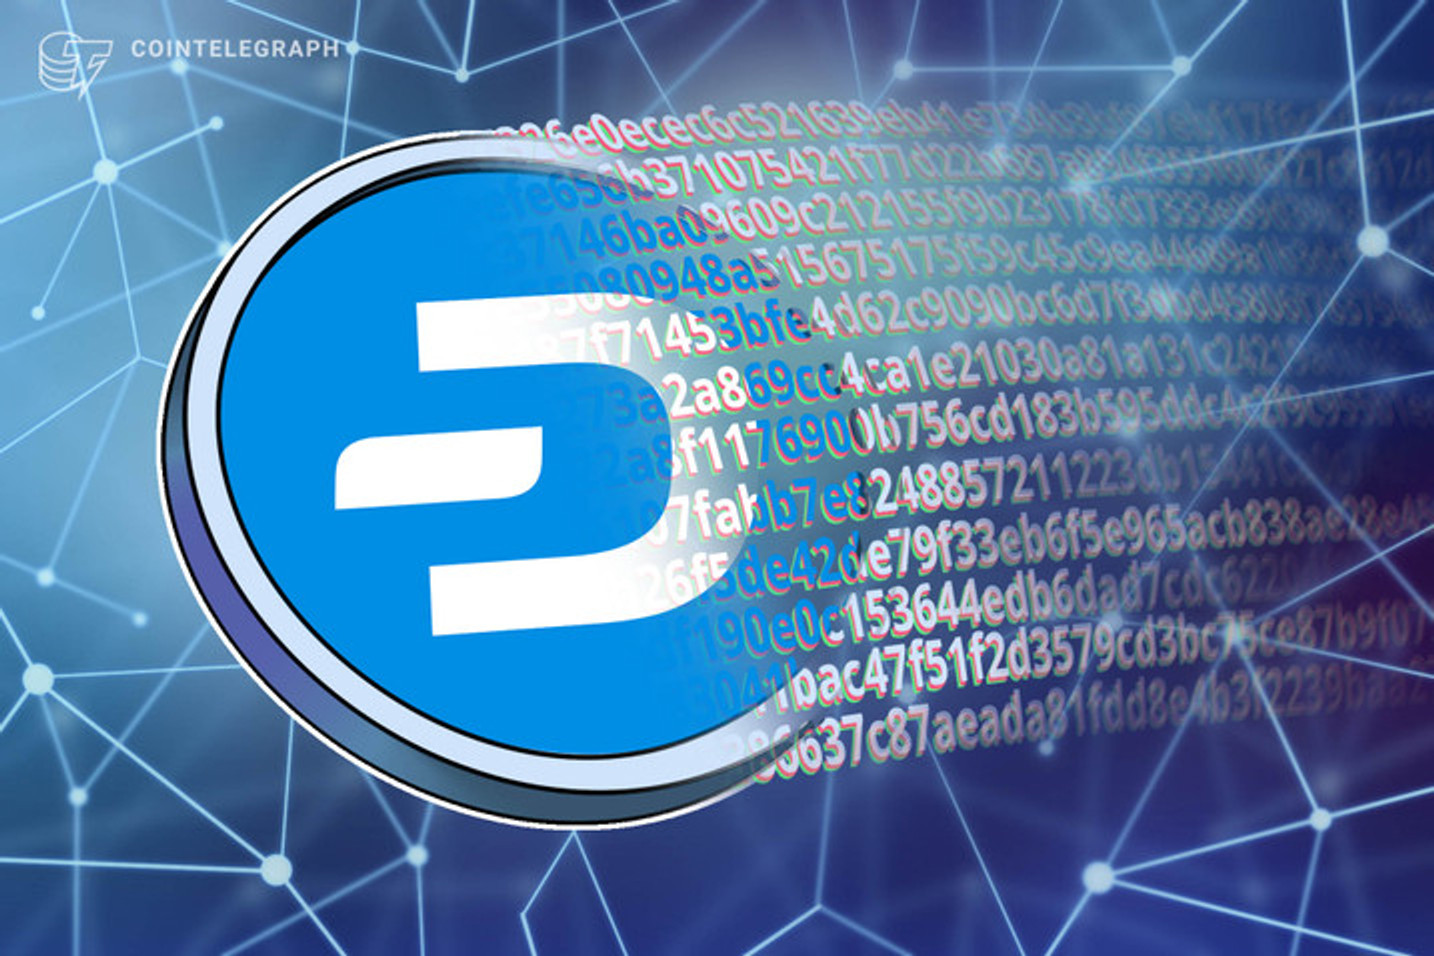 Entrevista exclusiva com Omar Hamwi do Dash Core Group